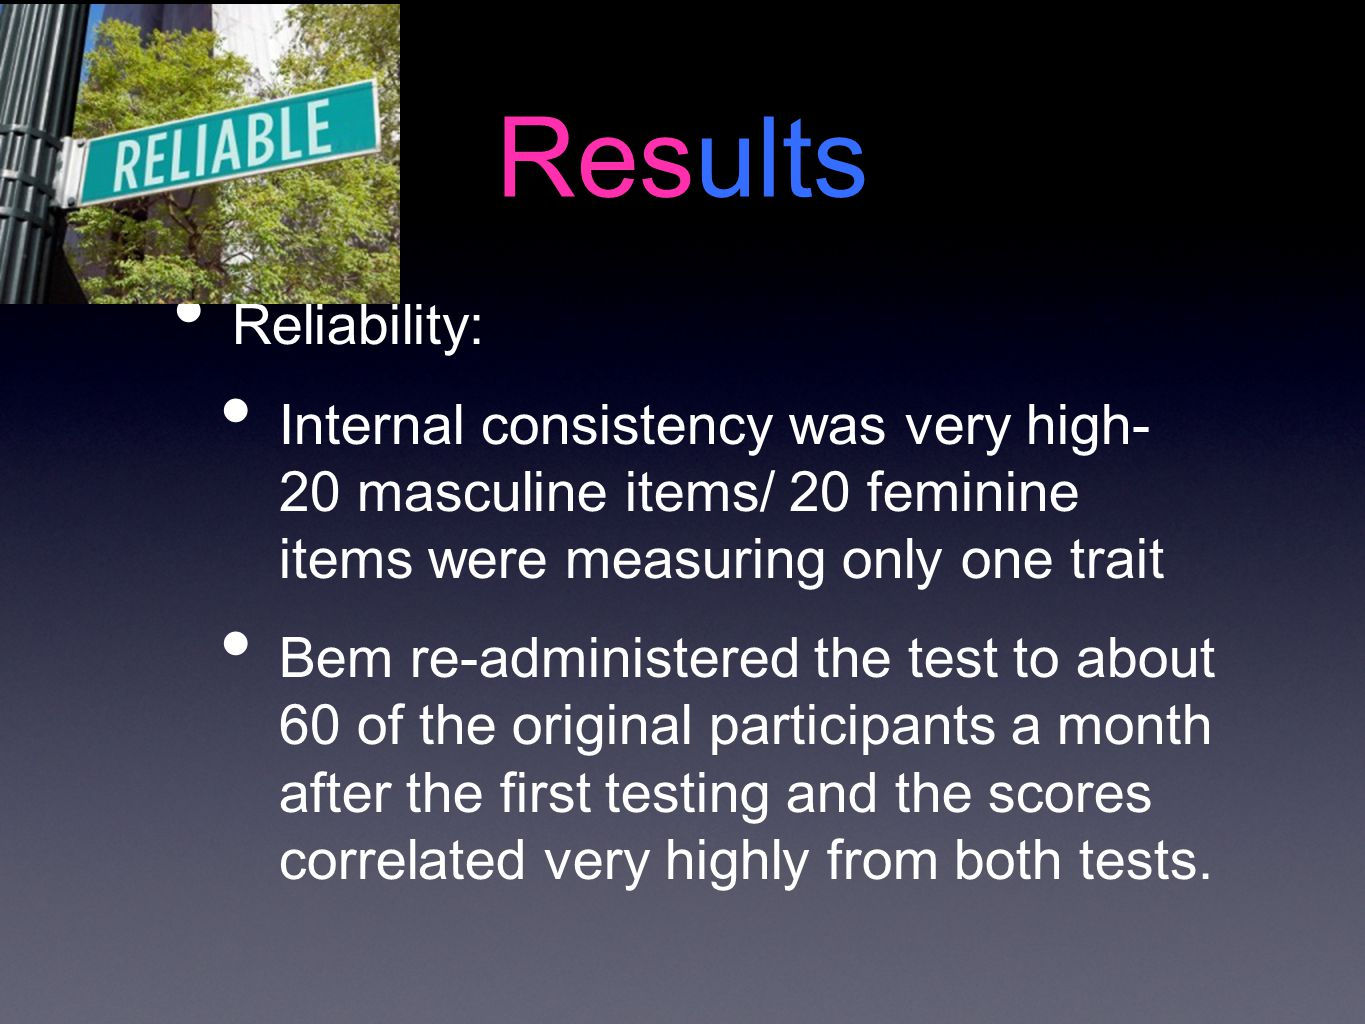 Results Reliability: Internal consistency was very high- 20 masculine items/ 20 feminine items were measuring only one trait.